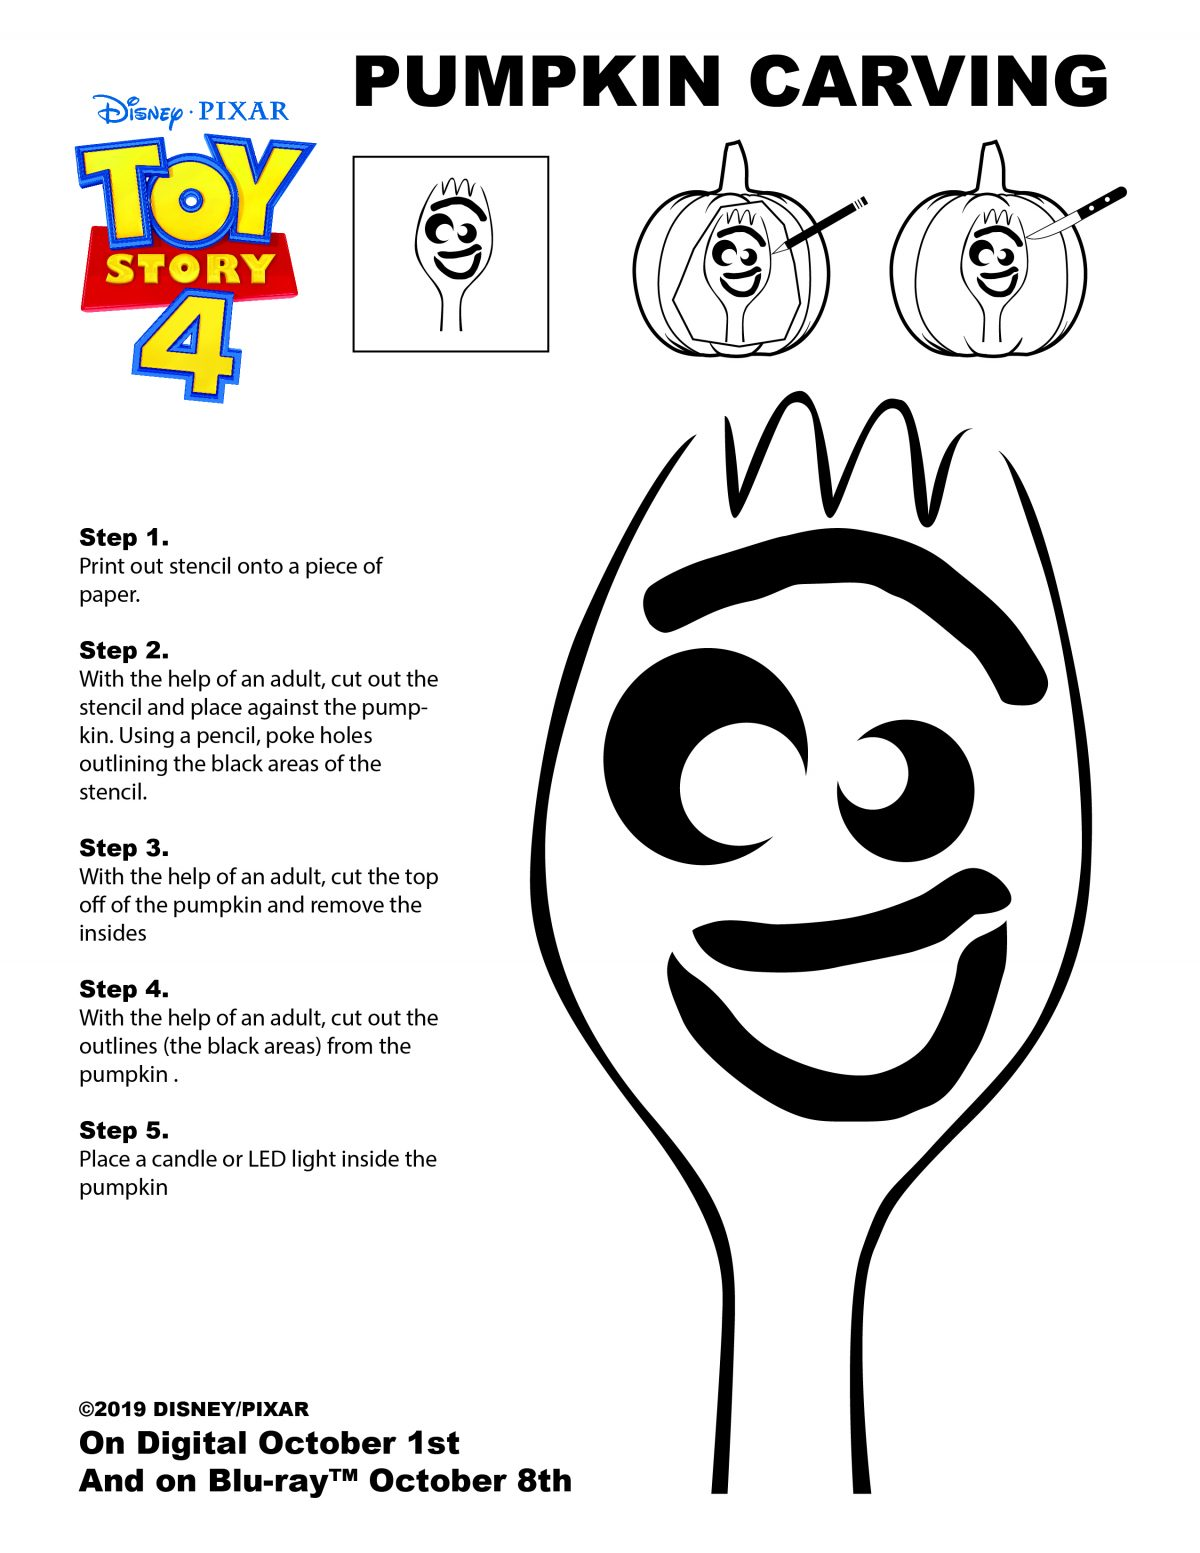 Forky Pumpkin Carving Stencil From Toy Story 4 Review